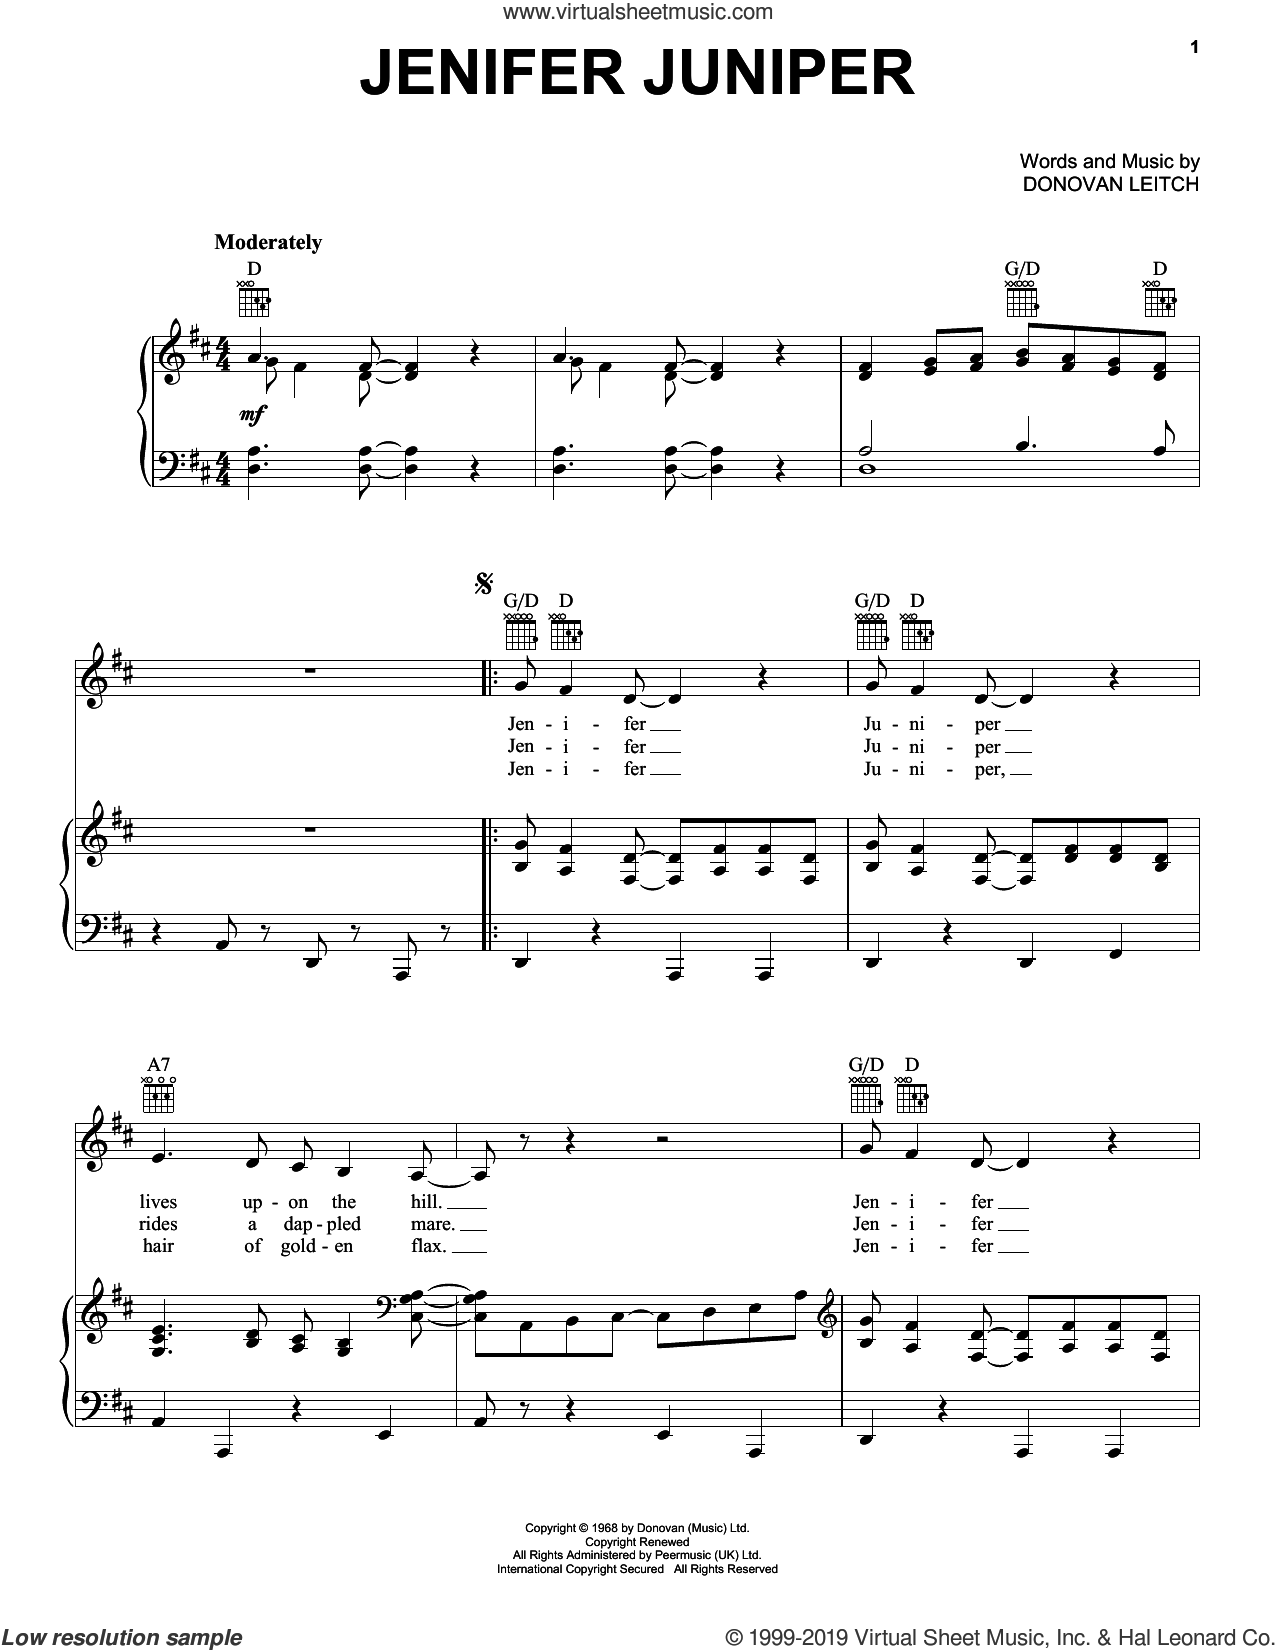 Jenifer Juniper sheet music for voice, piano or guitar by Walter Donovan and Donovan Leitch, intermediate skill level